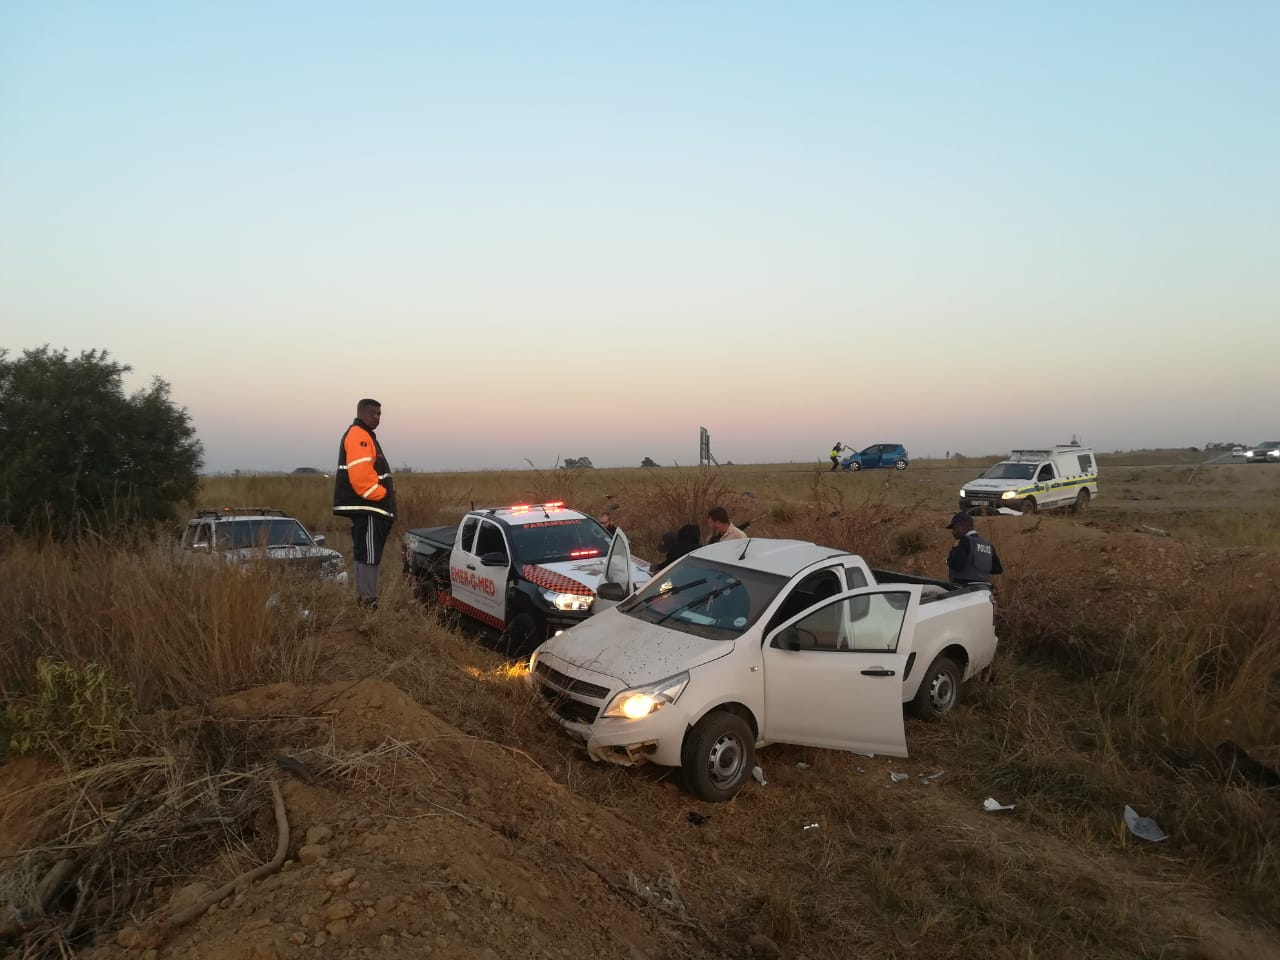 One person injured in collision at intersection in Centurion